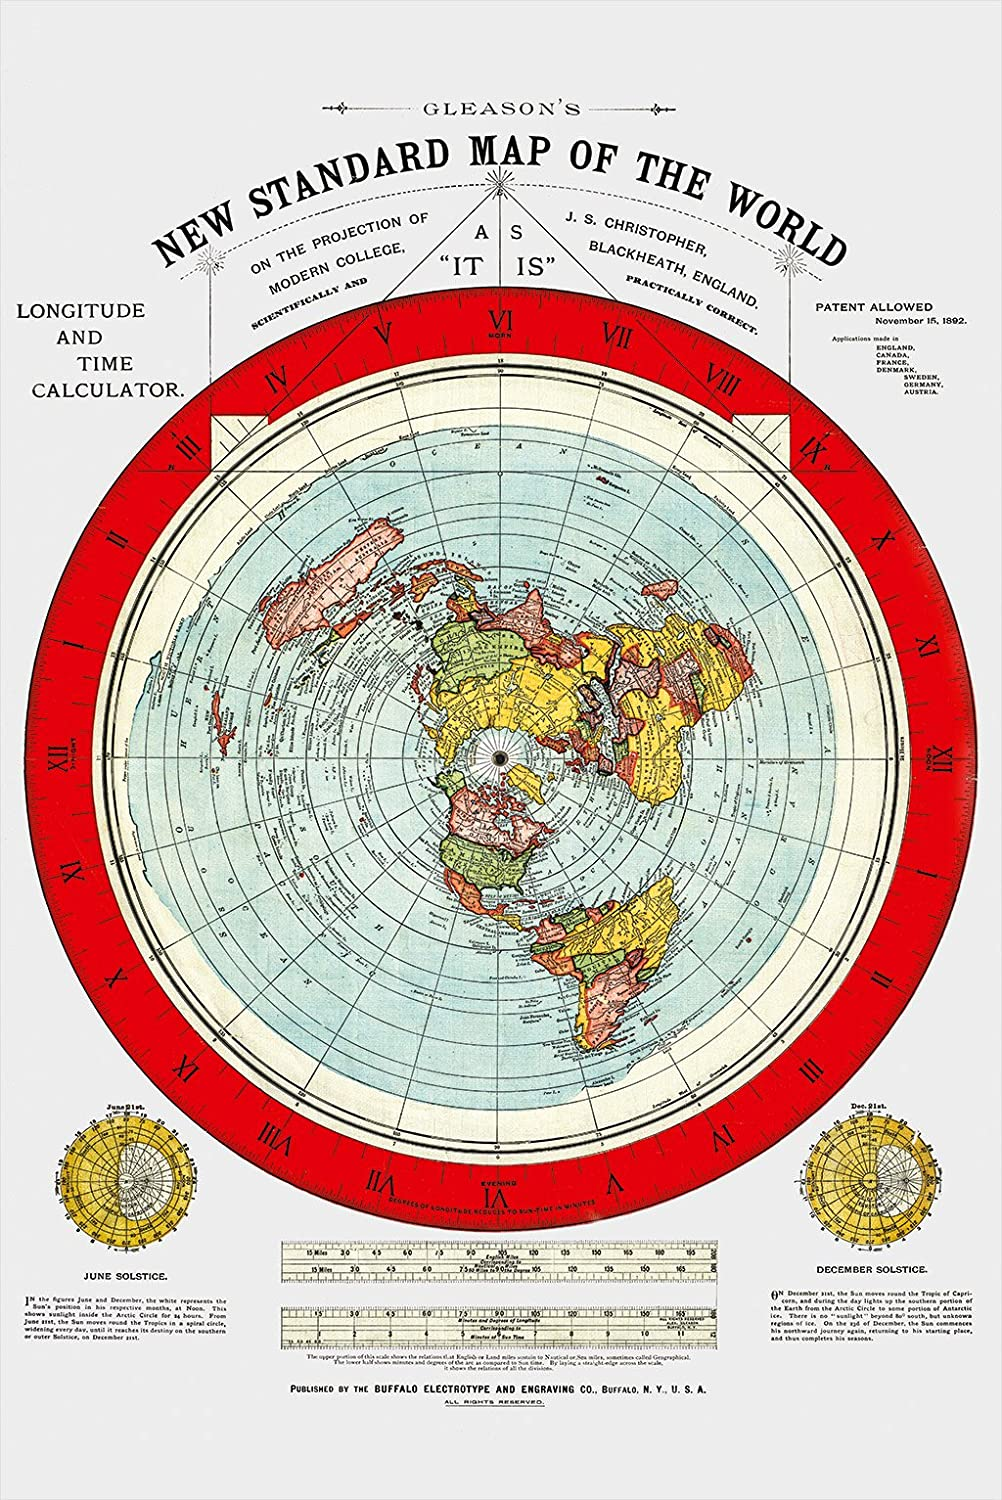 true flat earth map Flat Earth Map Gleason S Standard Map Of The World Large 24 X 36 1892 5 Amazon In Home Kitchen